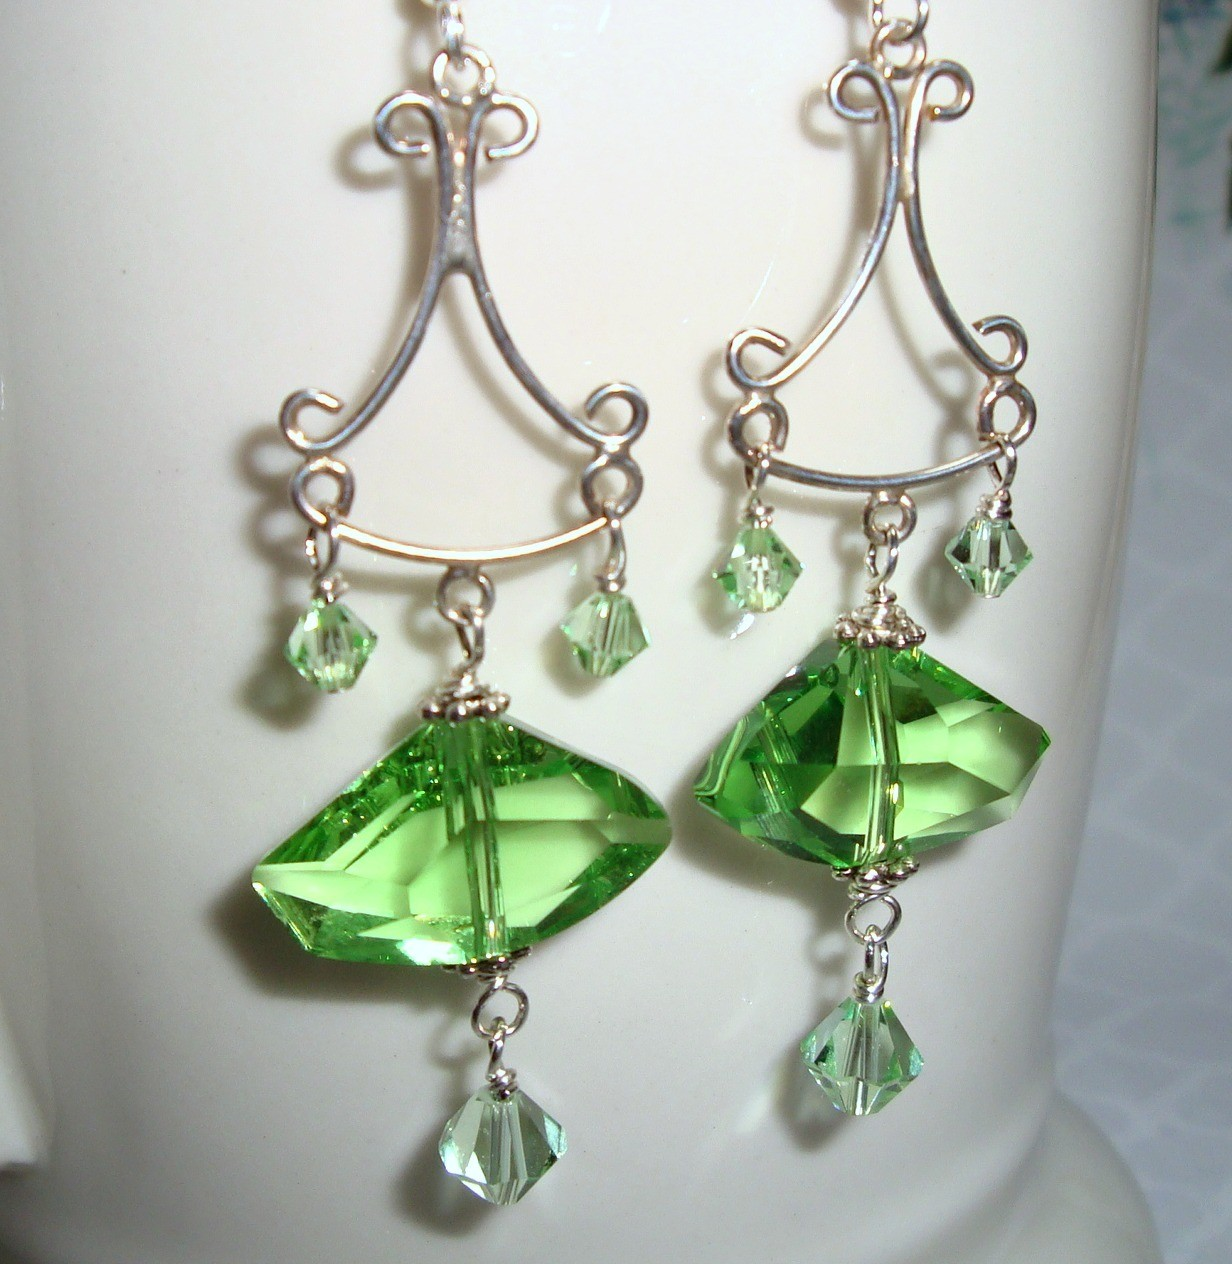 Ambrosia Sterling Earrings